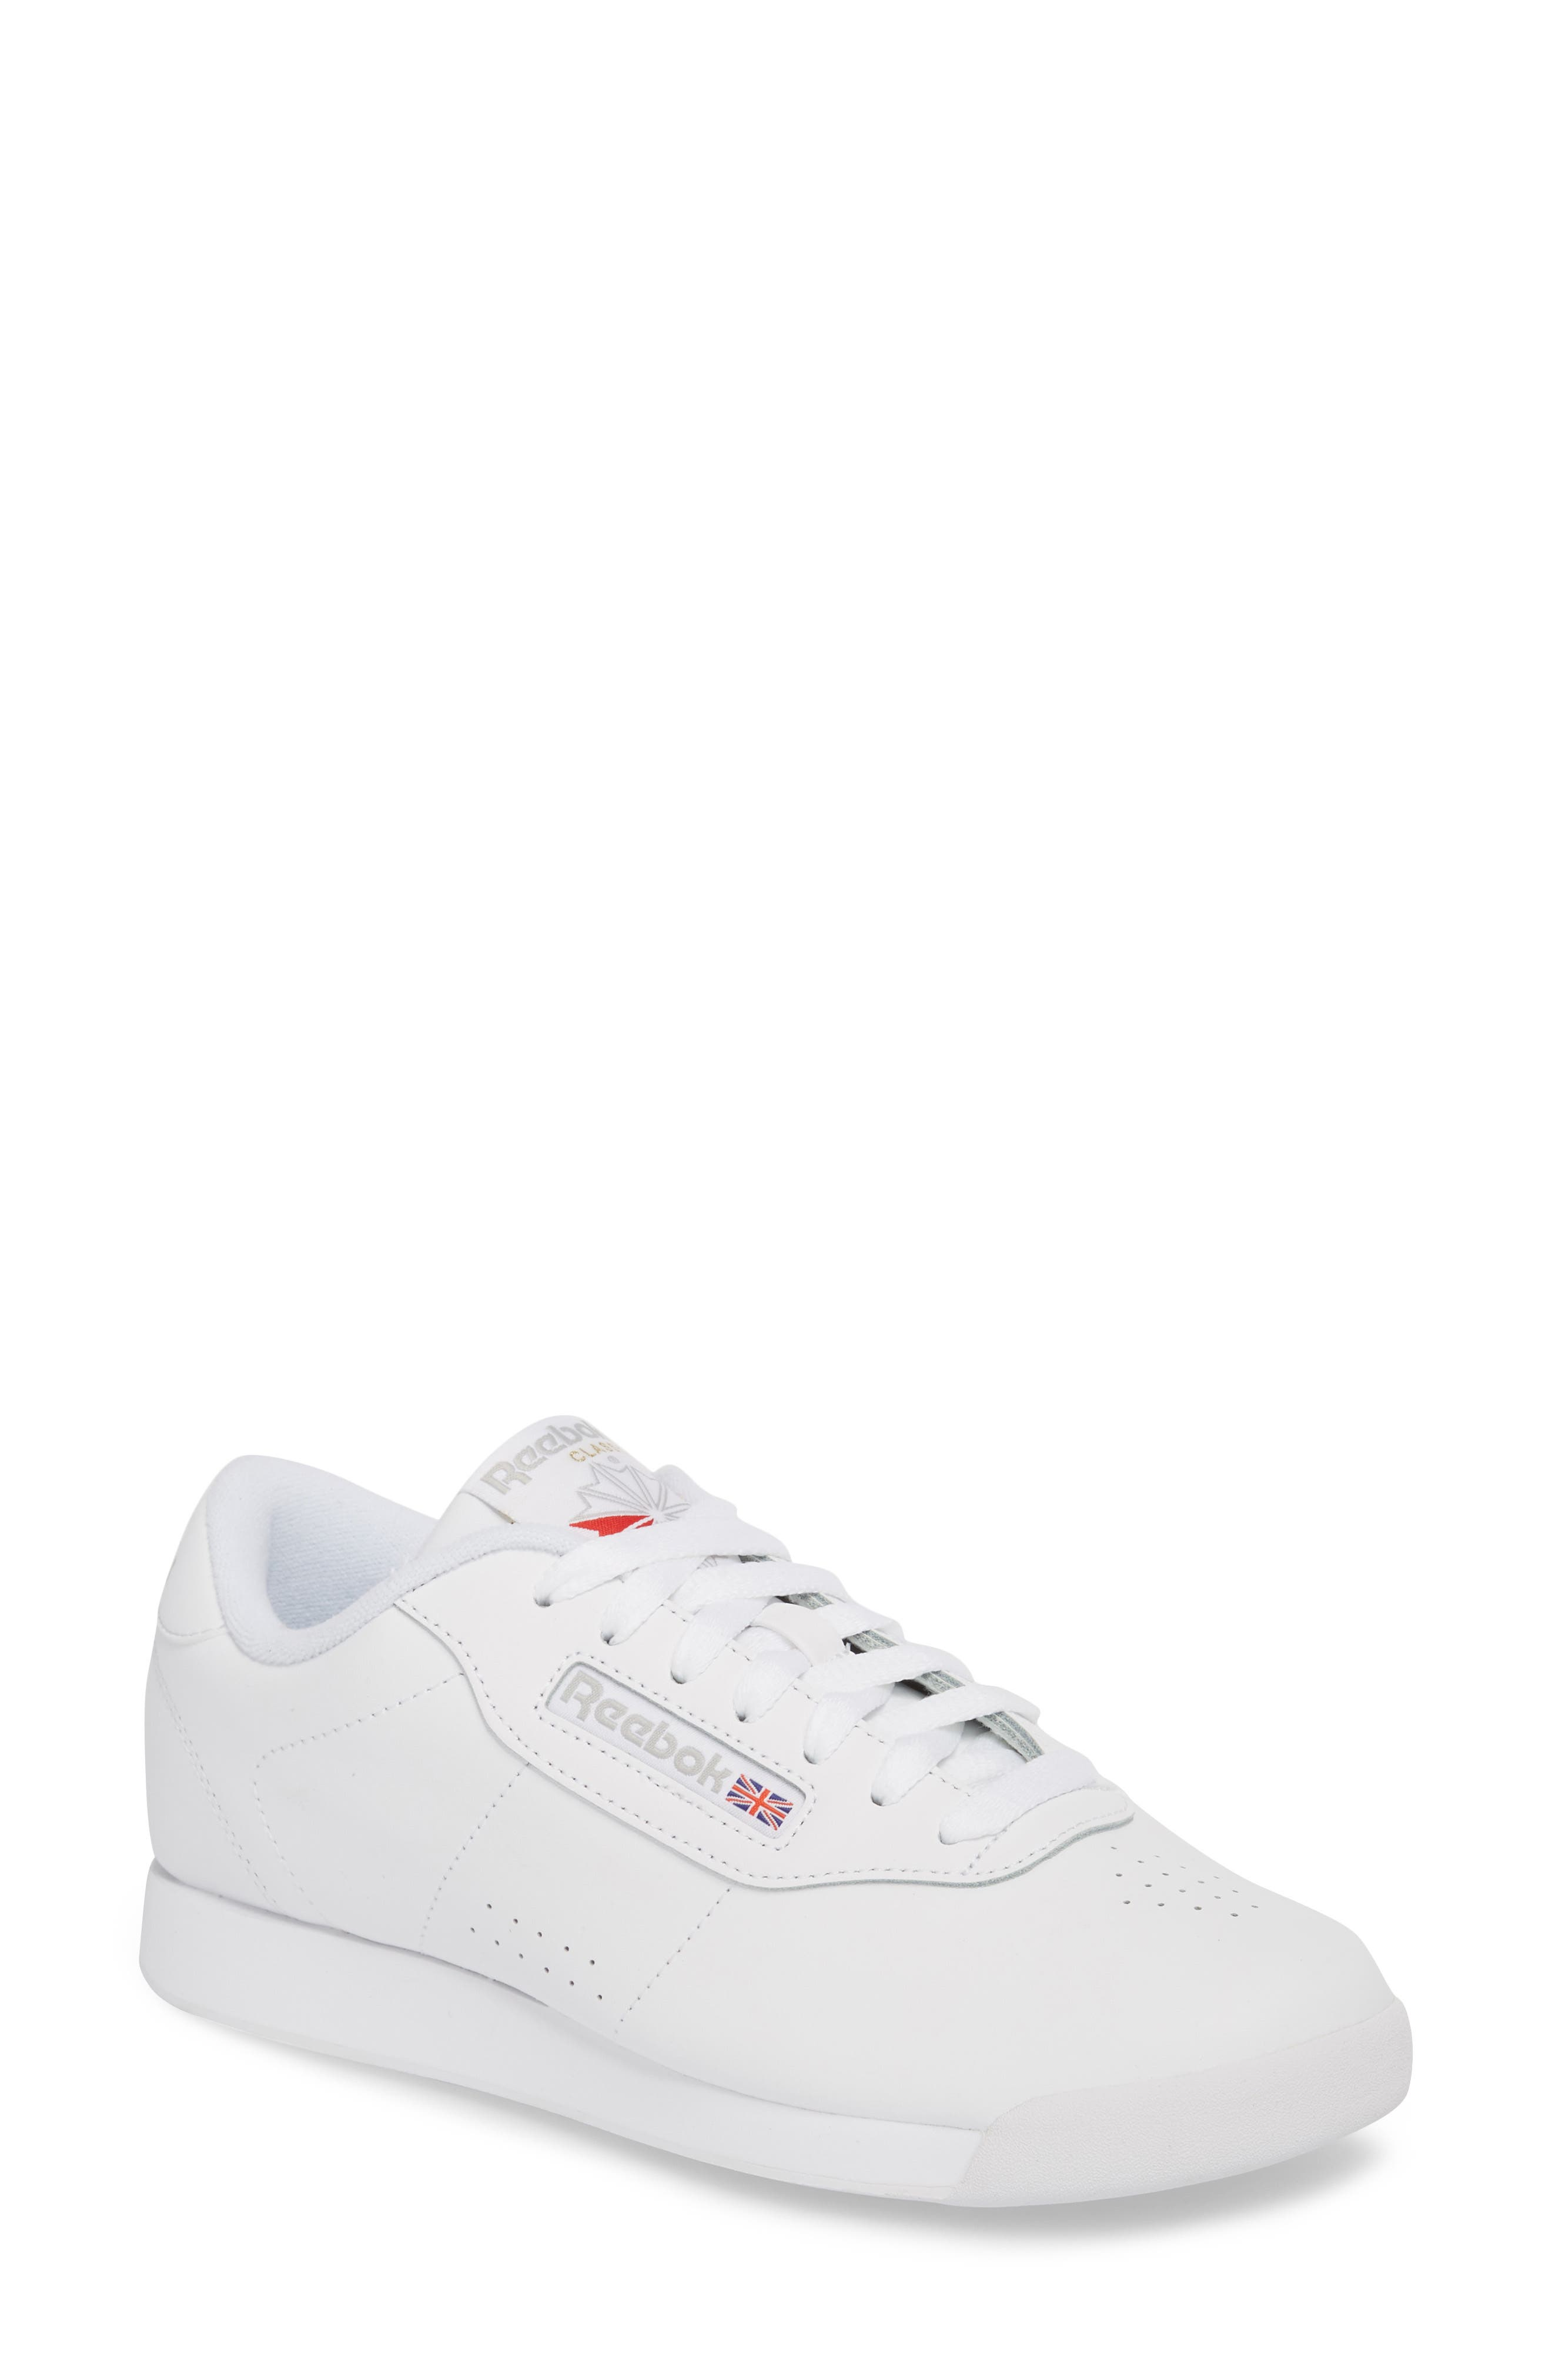 Reebok Princess Sneaker (Women)